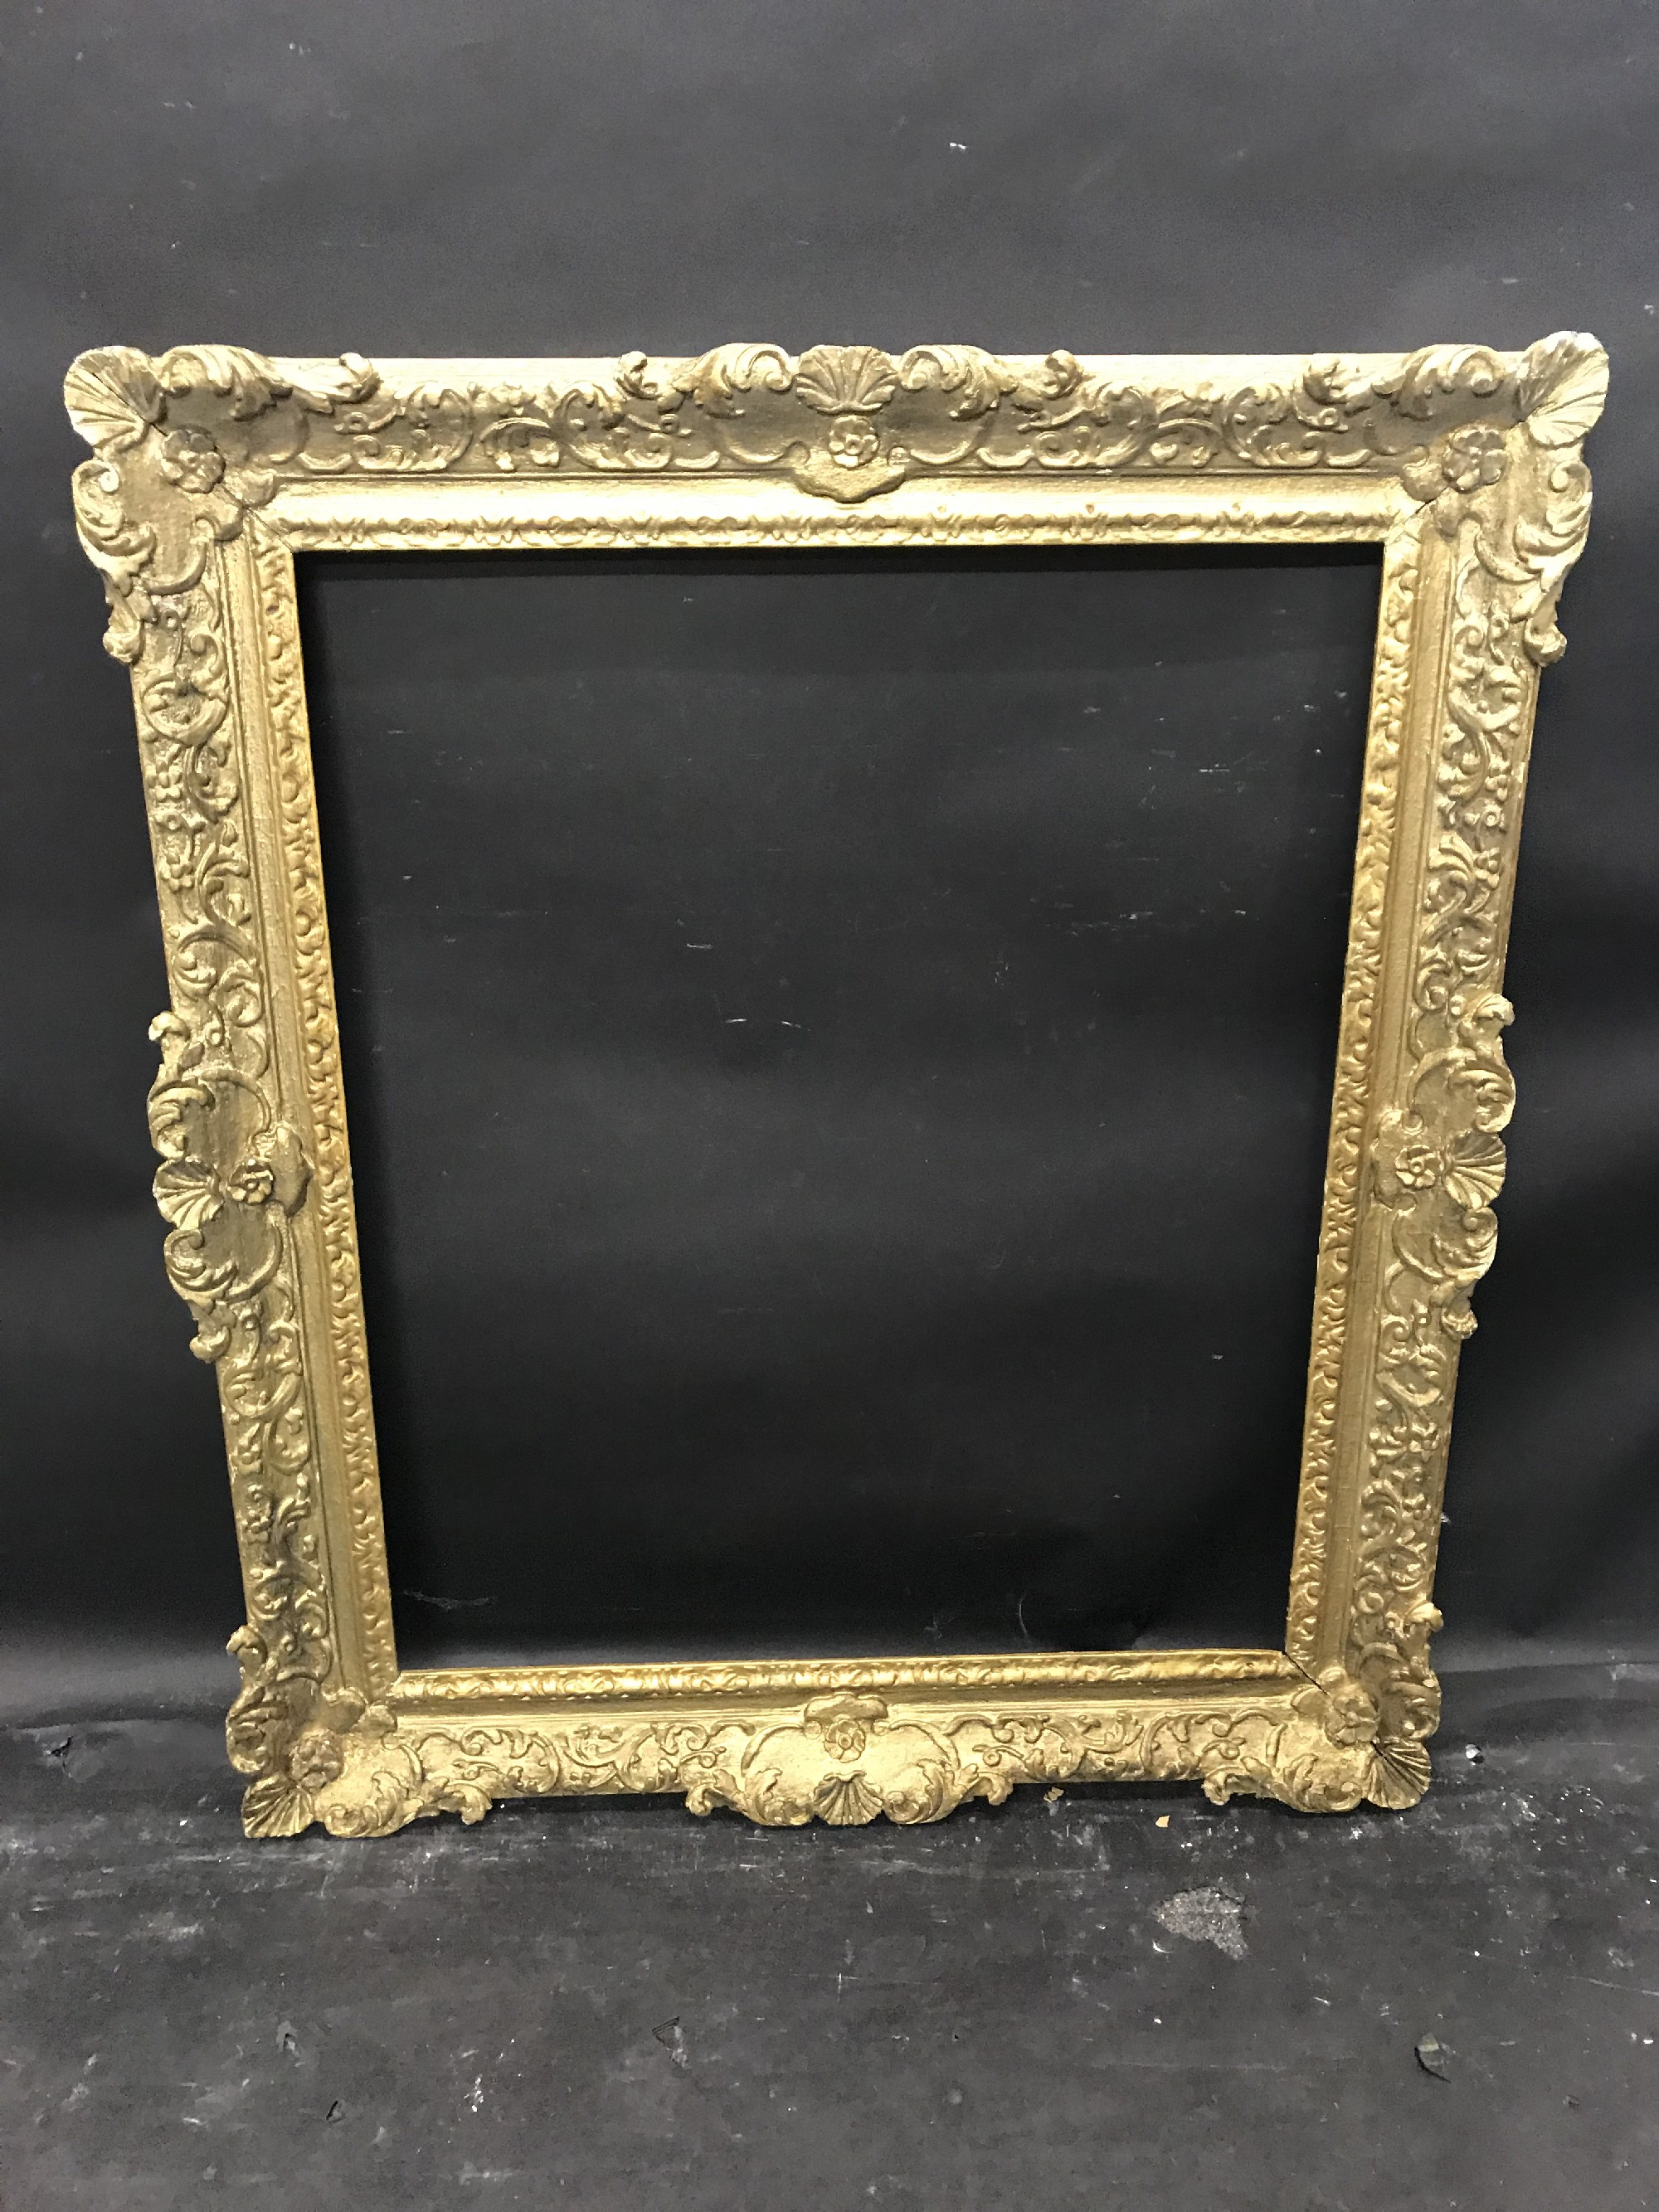 """Lot 21 - 19th Century English School. A Carved Giltwood Frame, with Swept Centers and Corners, 30"""" x 25""""."""